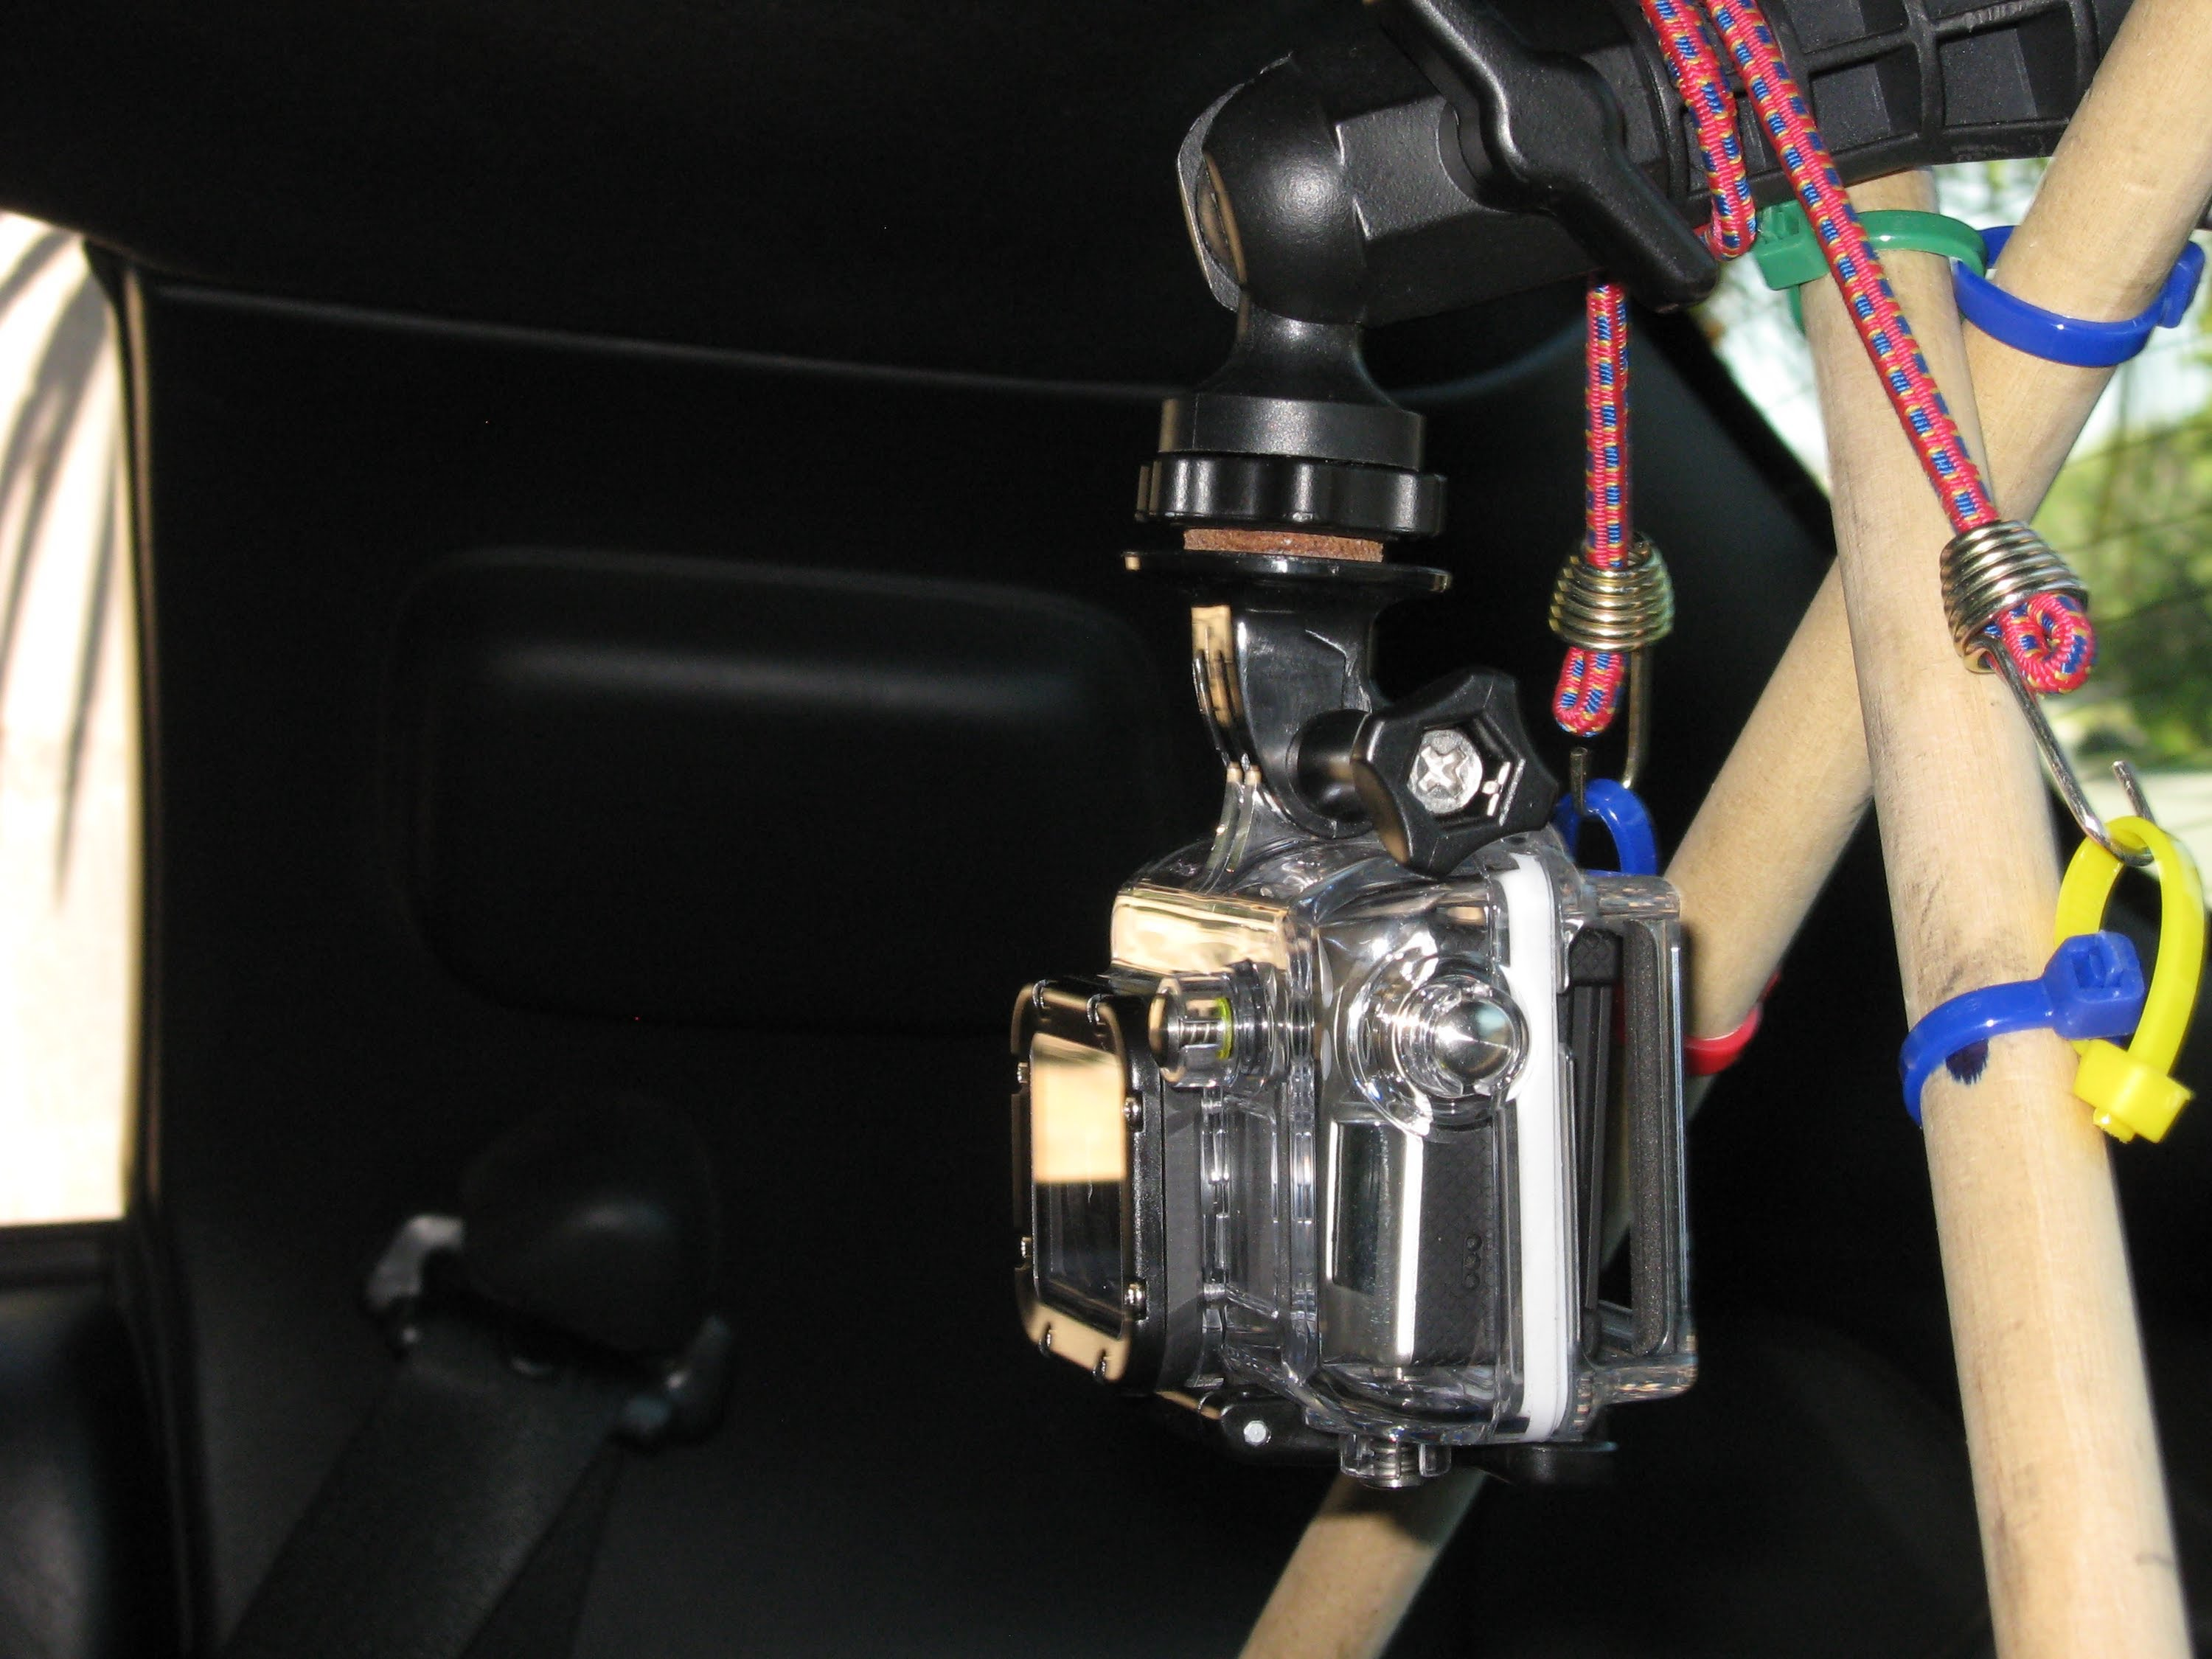 C5 Corvette GoPro Hero camera mount by froggy